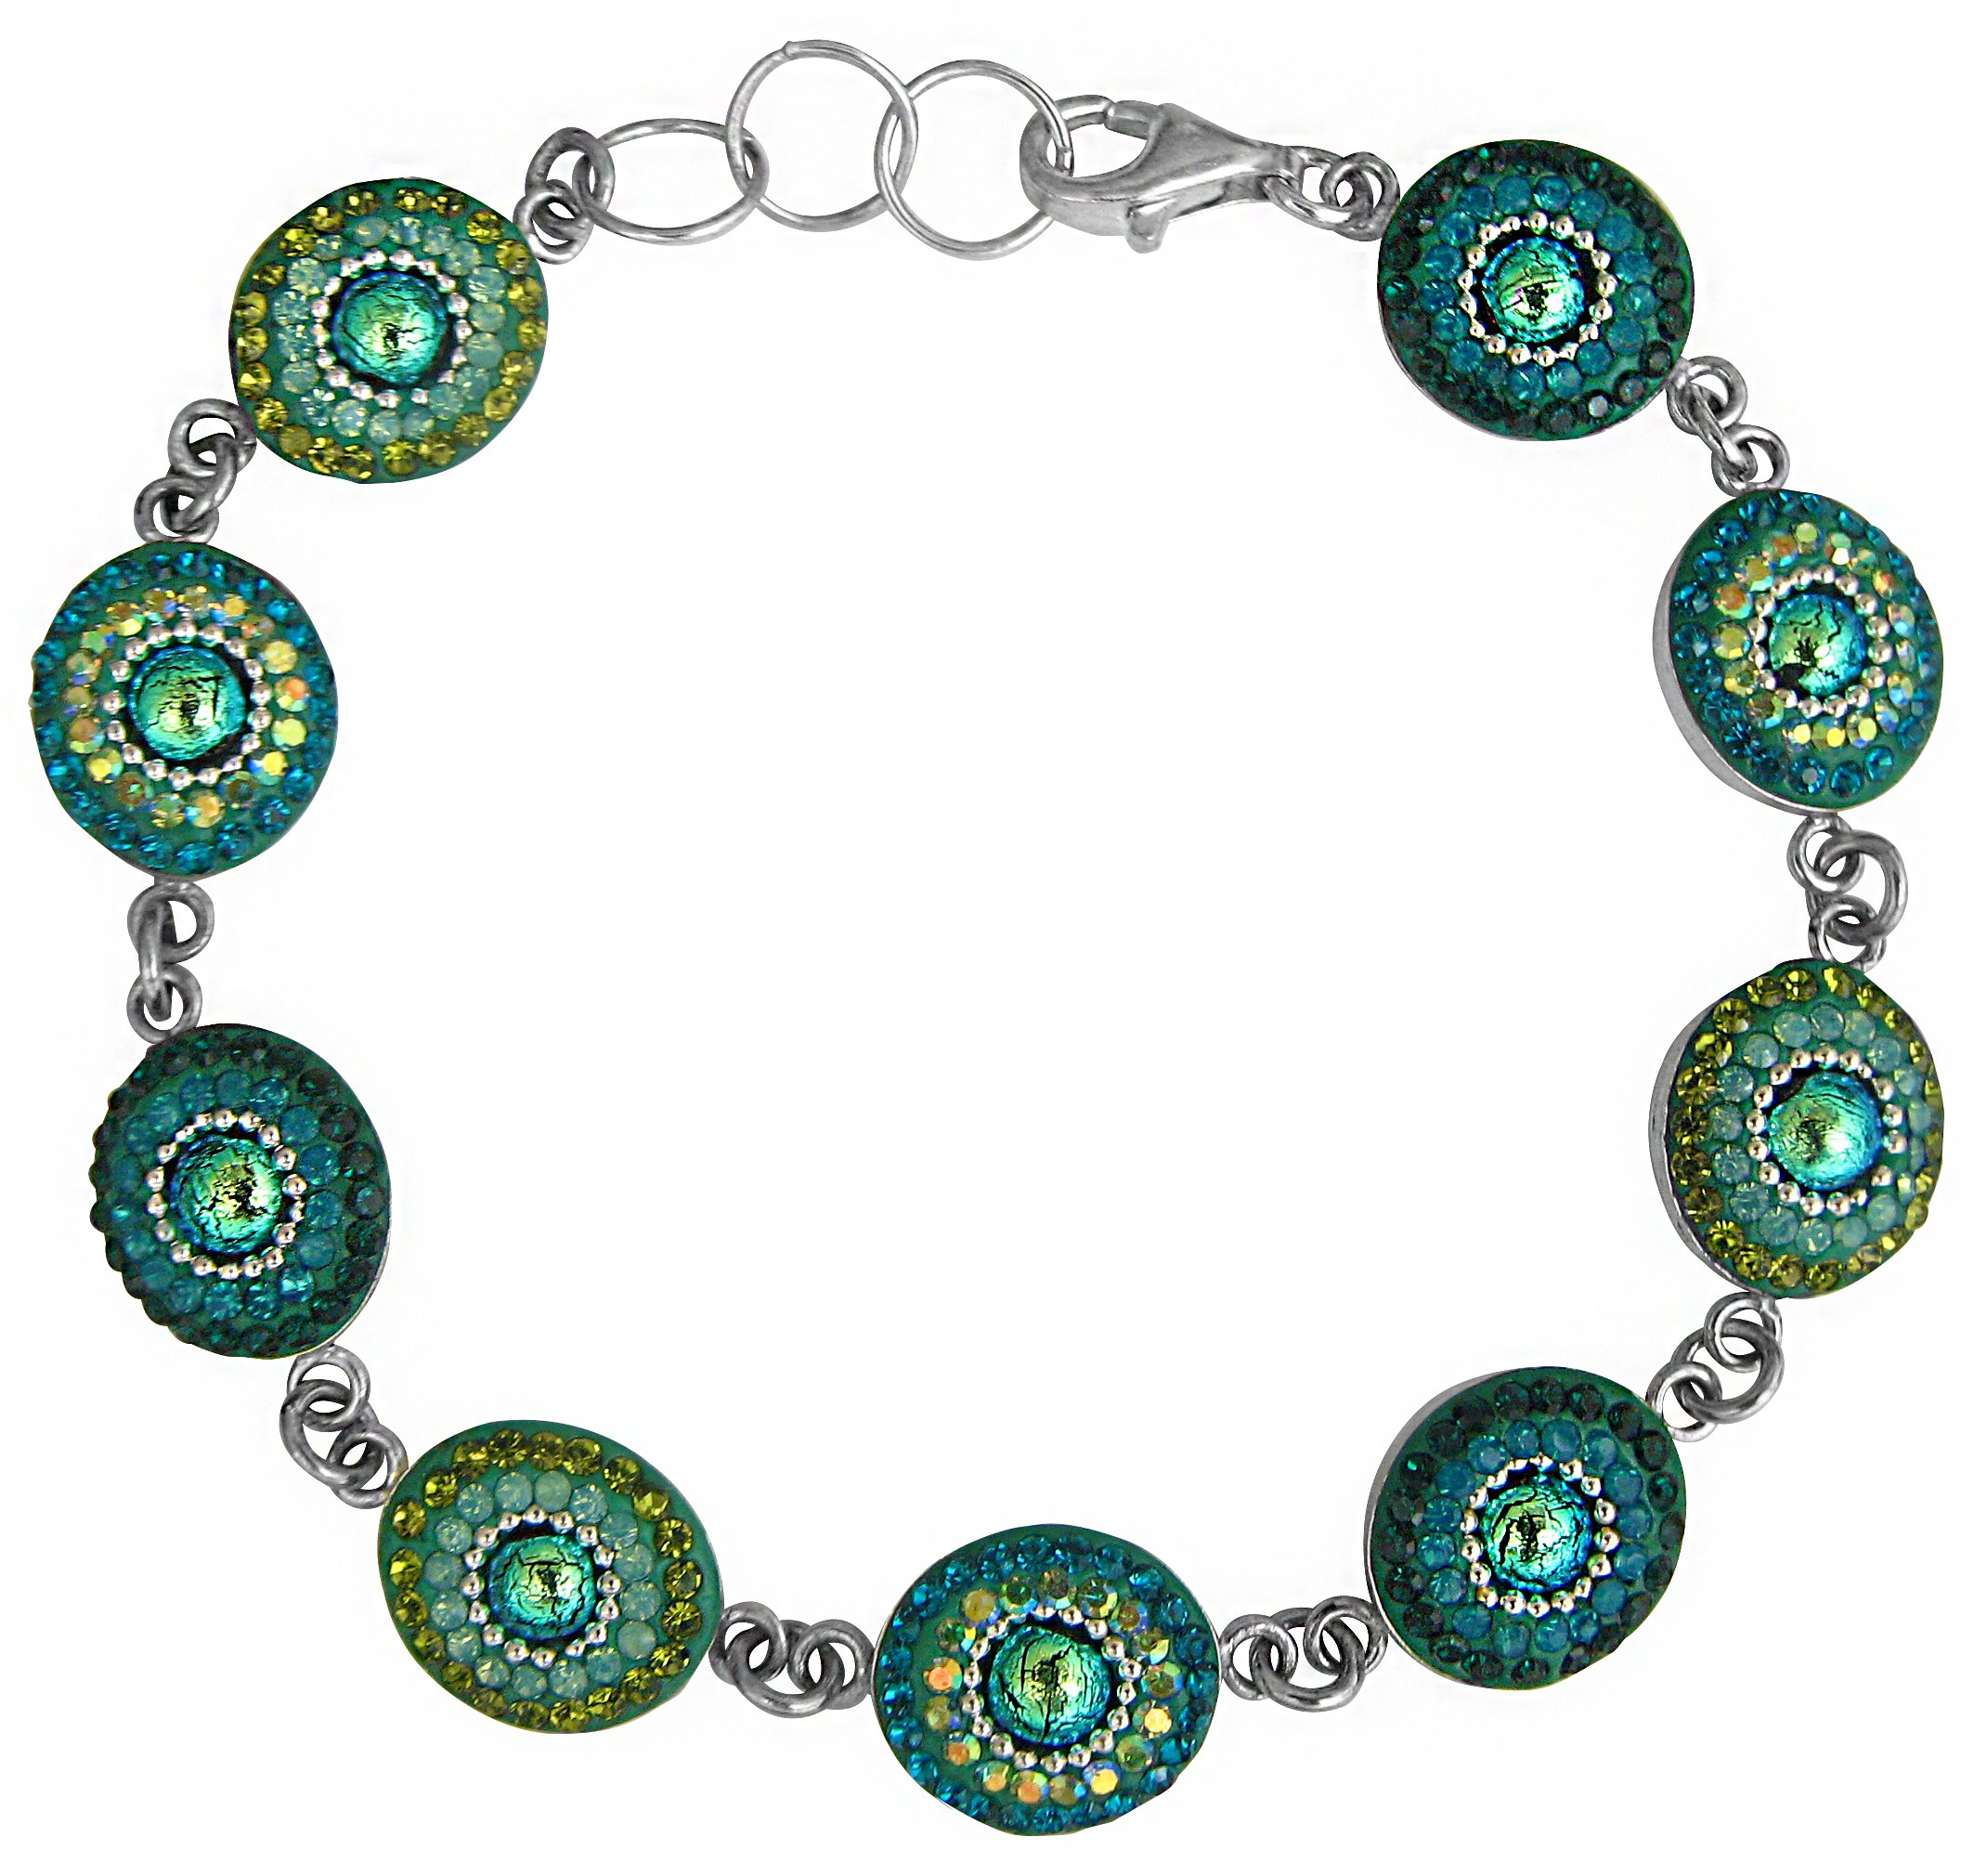 Mosaico Sterling Silver Dichroic Glass and Preciosa Czech Crystals Link Bracelet, 7.5'' … (Green and Teal) by Dreamglass Mexico